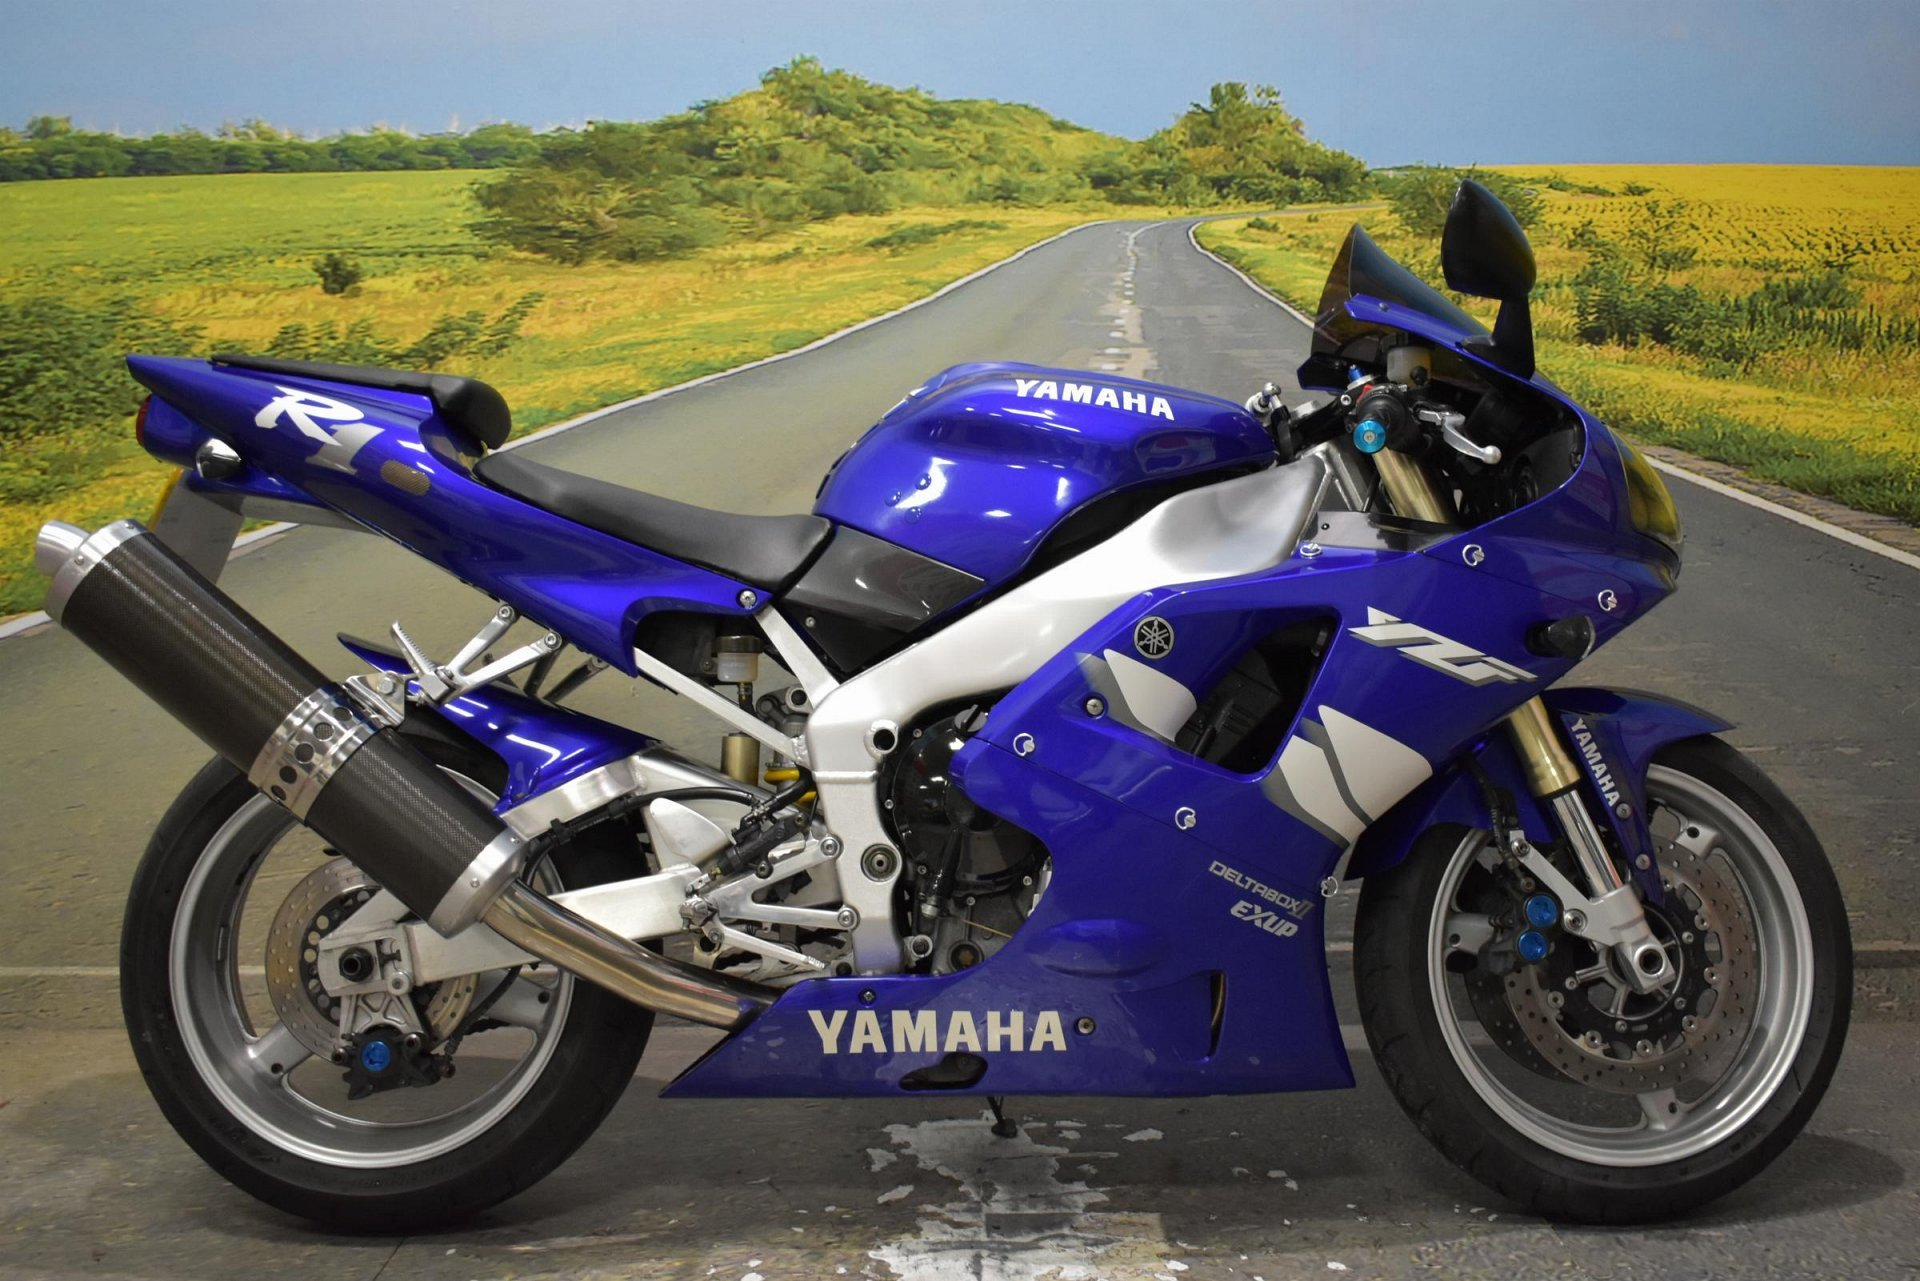 1999 Yamaha YZF-R1 for sale in Derbyshire